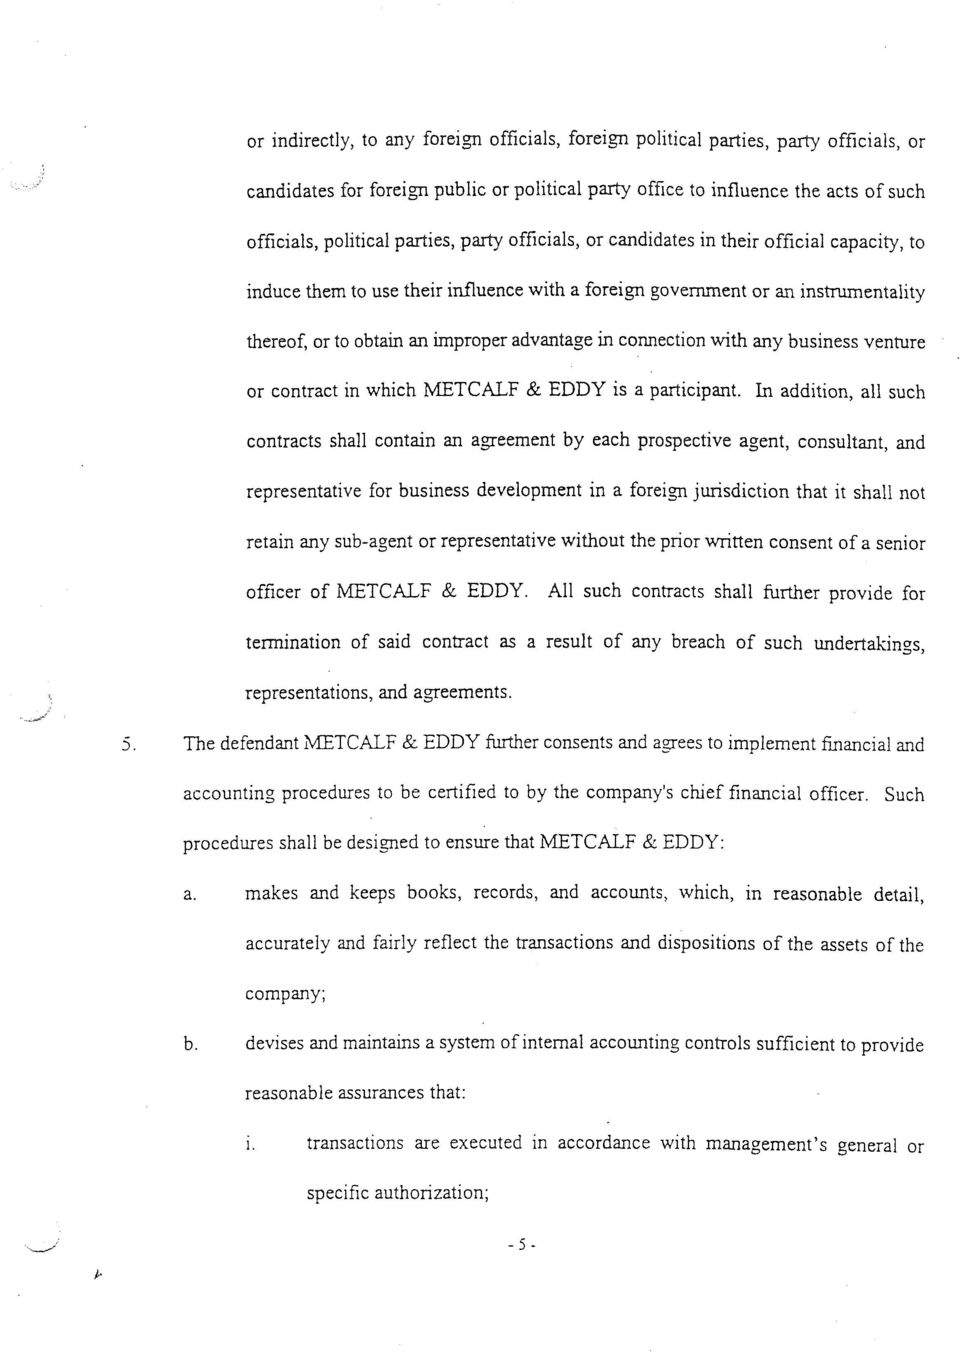 in connection with any business venture or contract in which METCALF & EDDY is a participant.